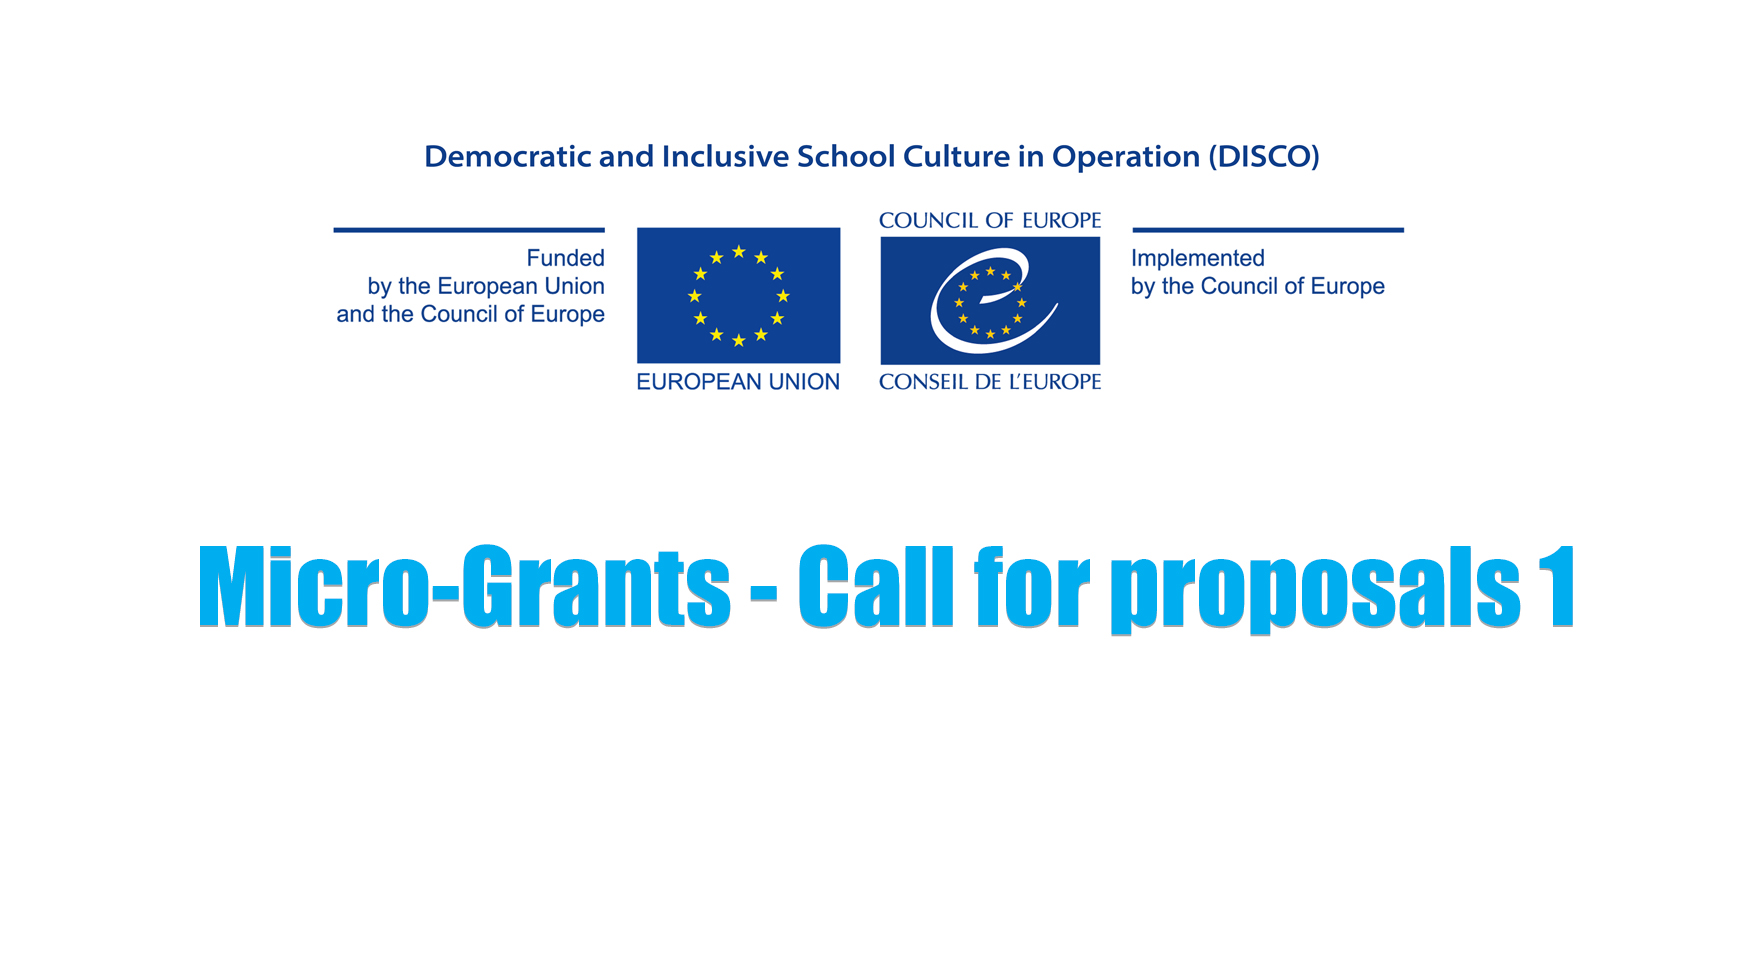 DISCO Call for proposals: micro-grants to support small-scale activities disseminating and further promoting previous cycles' outcomes